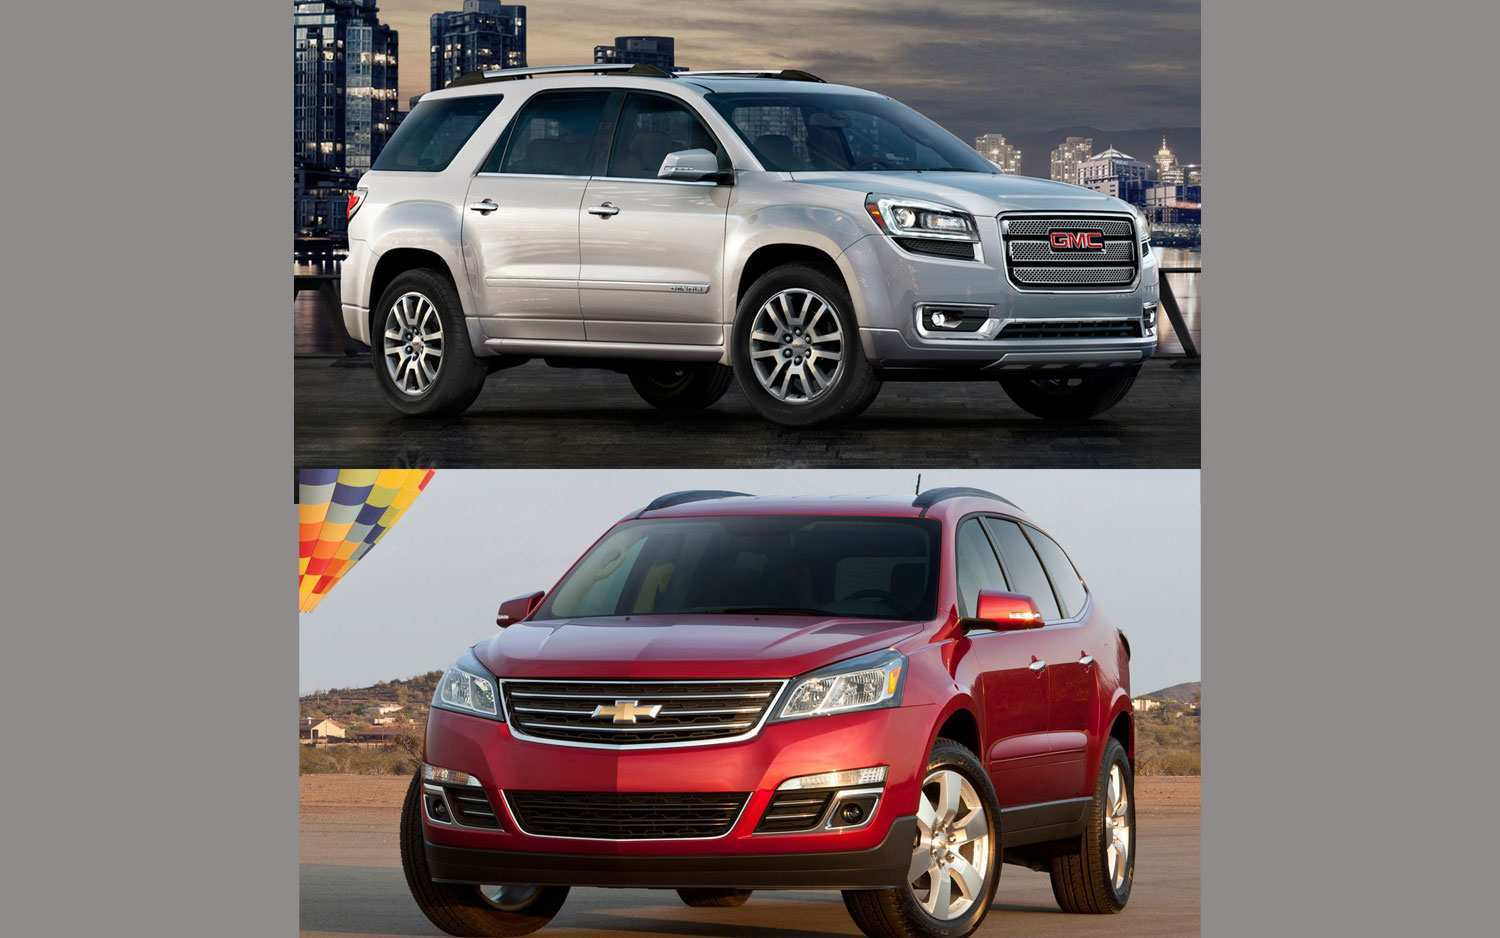 33 new 2020 gmc acadia vs chevy traverse overview | review